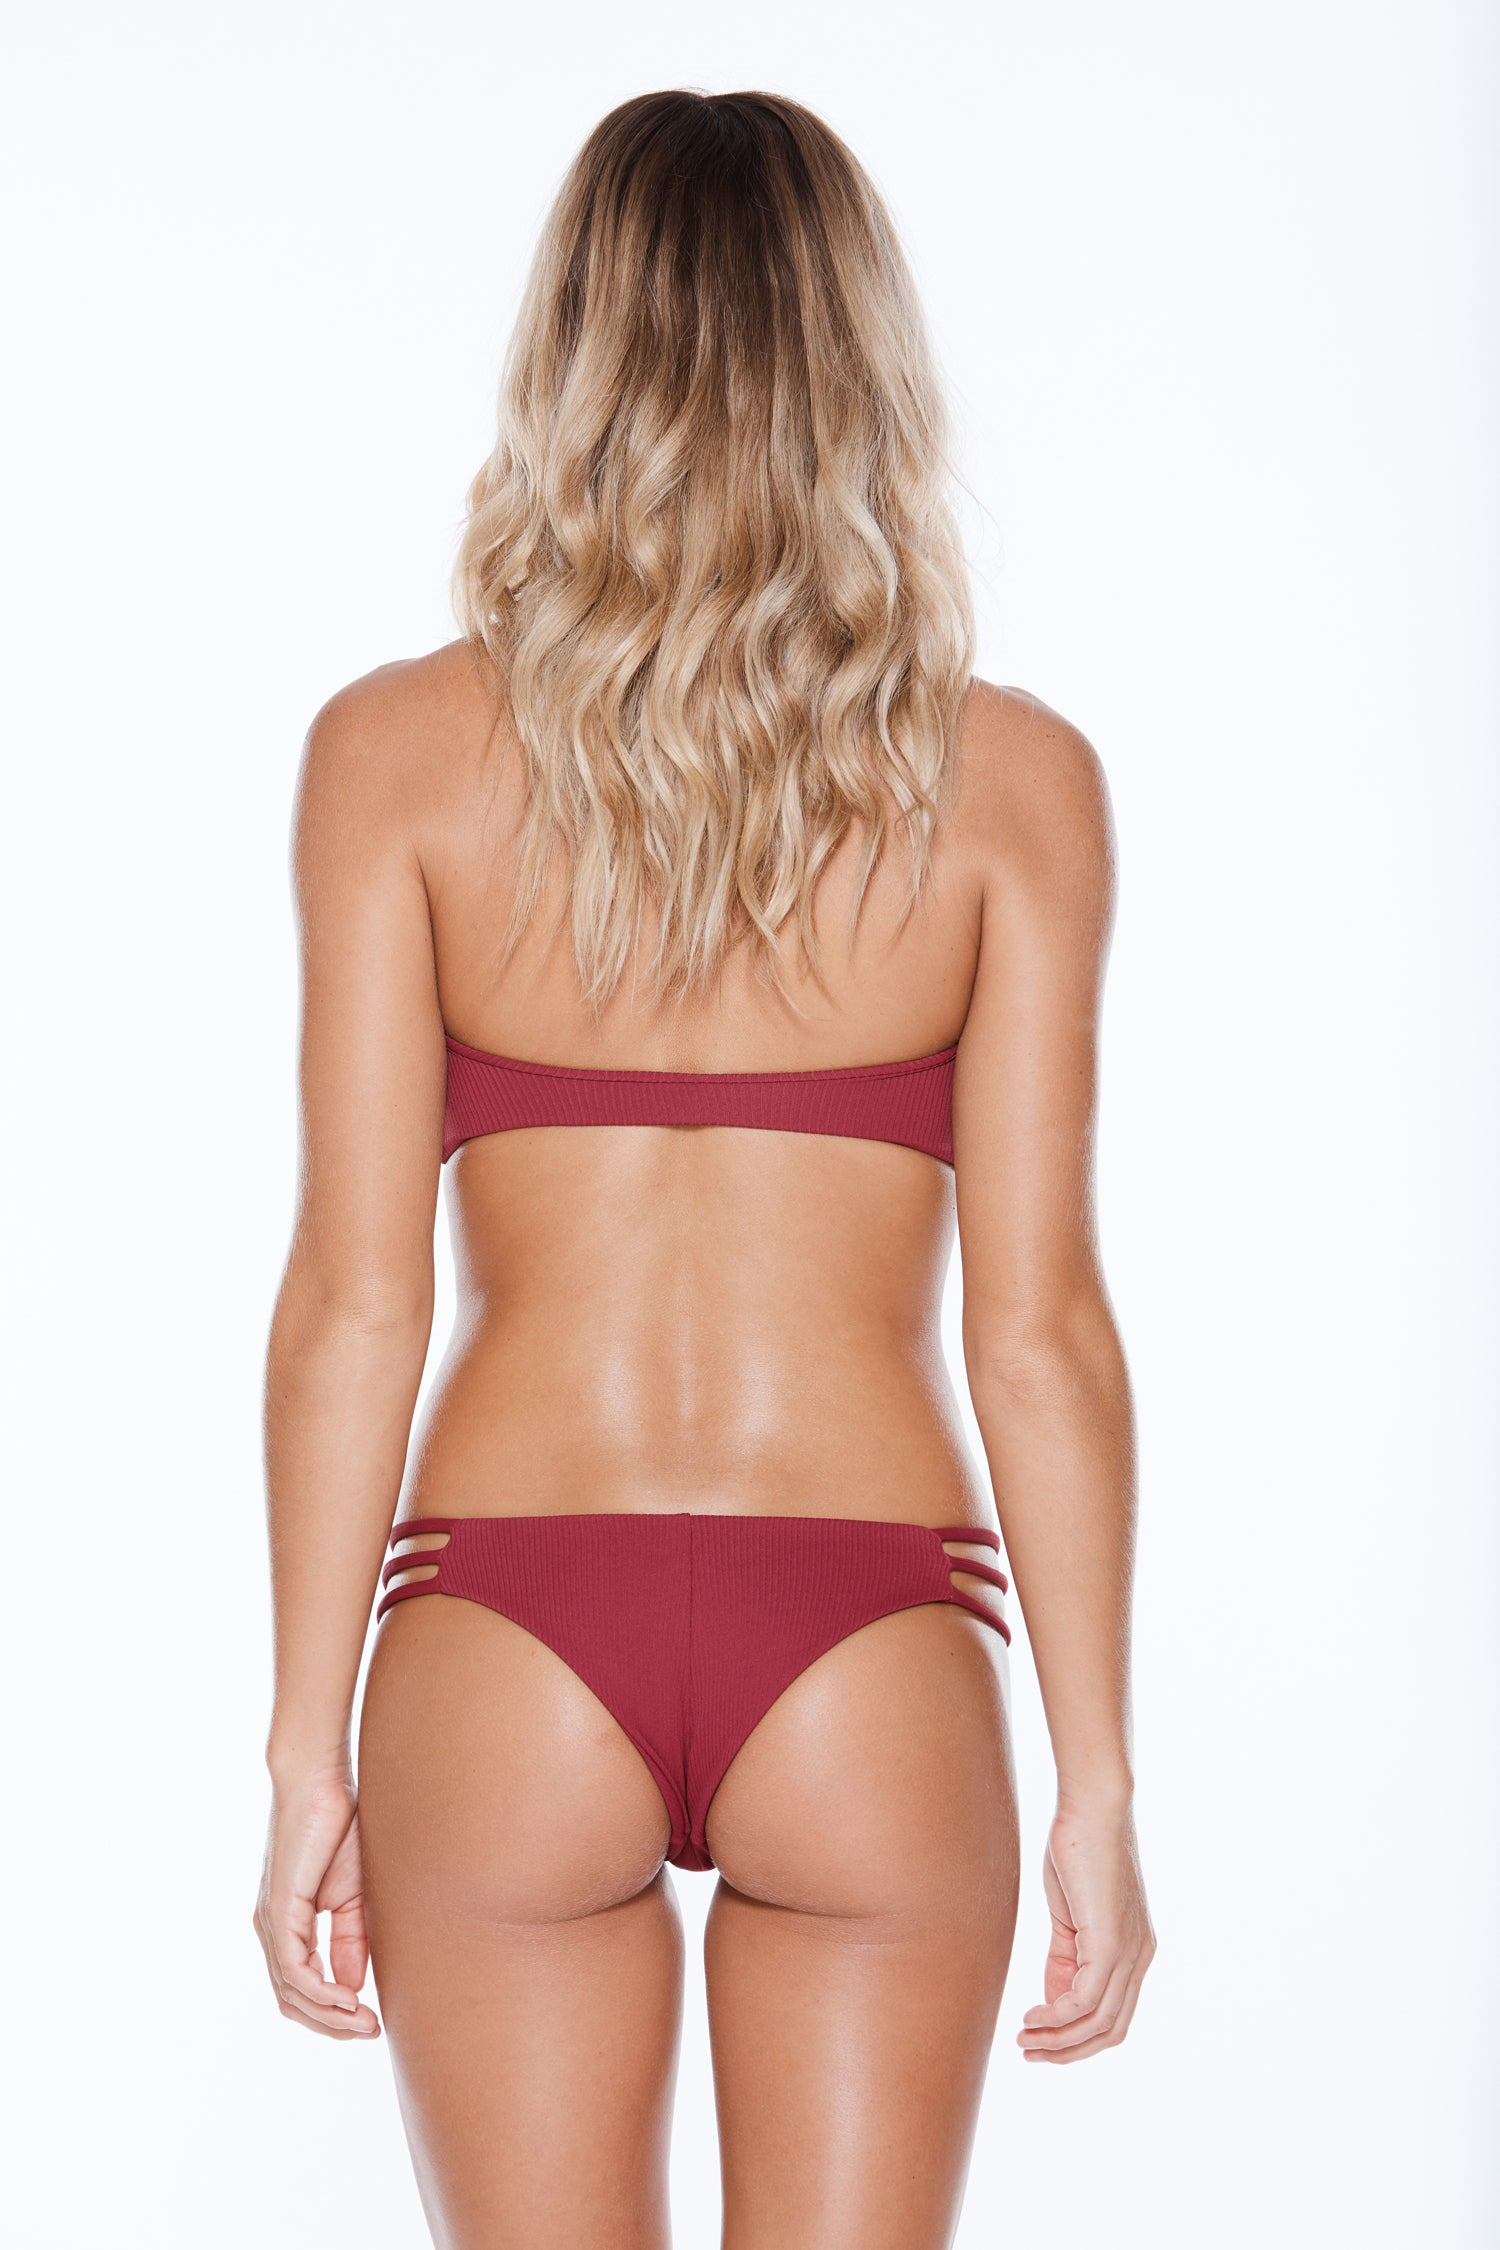 Low Tide Bottom - Burgundy Rib